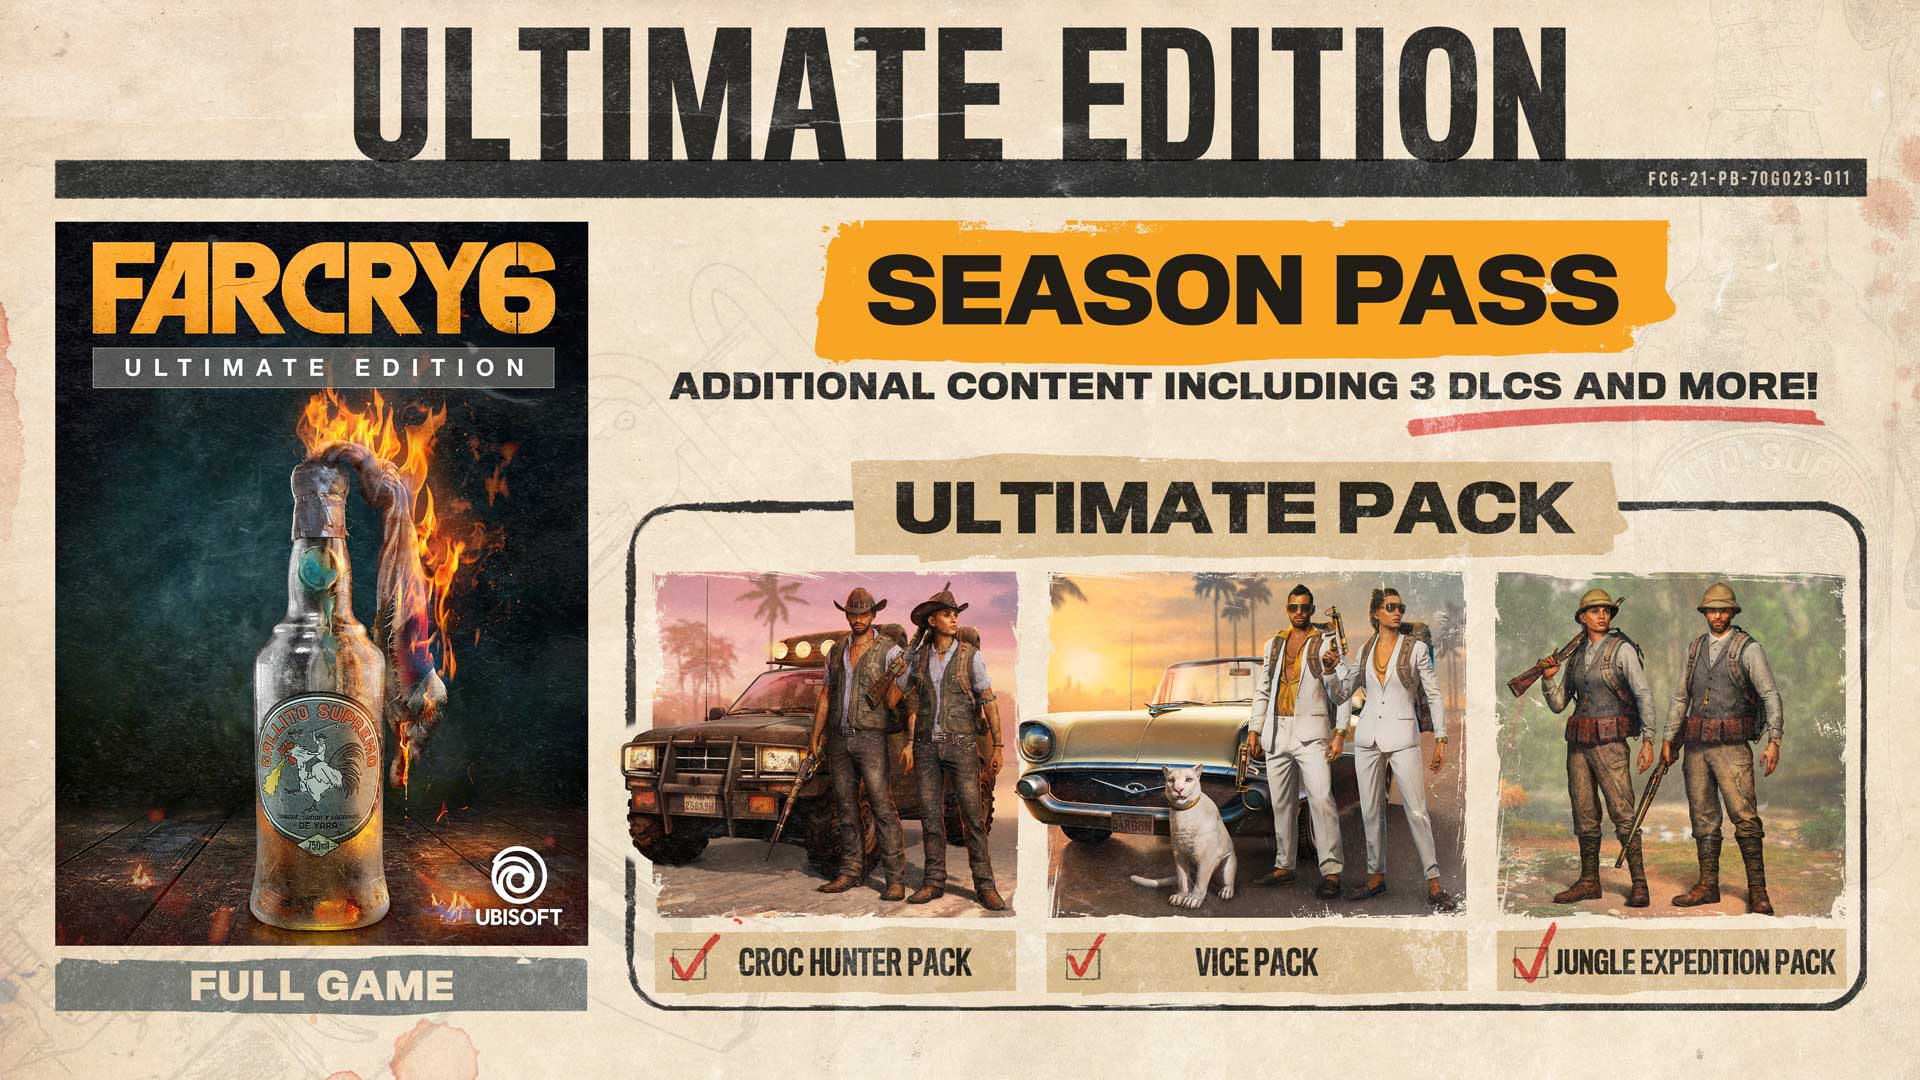 Image of Season Pass and DLCs from Far Cry 6